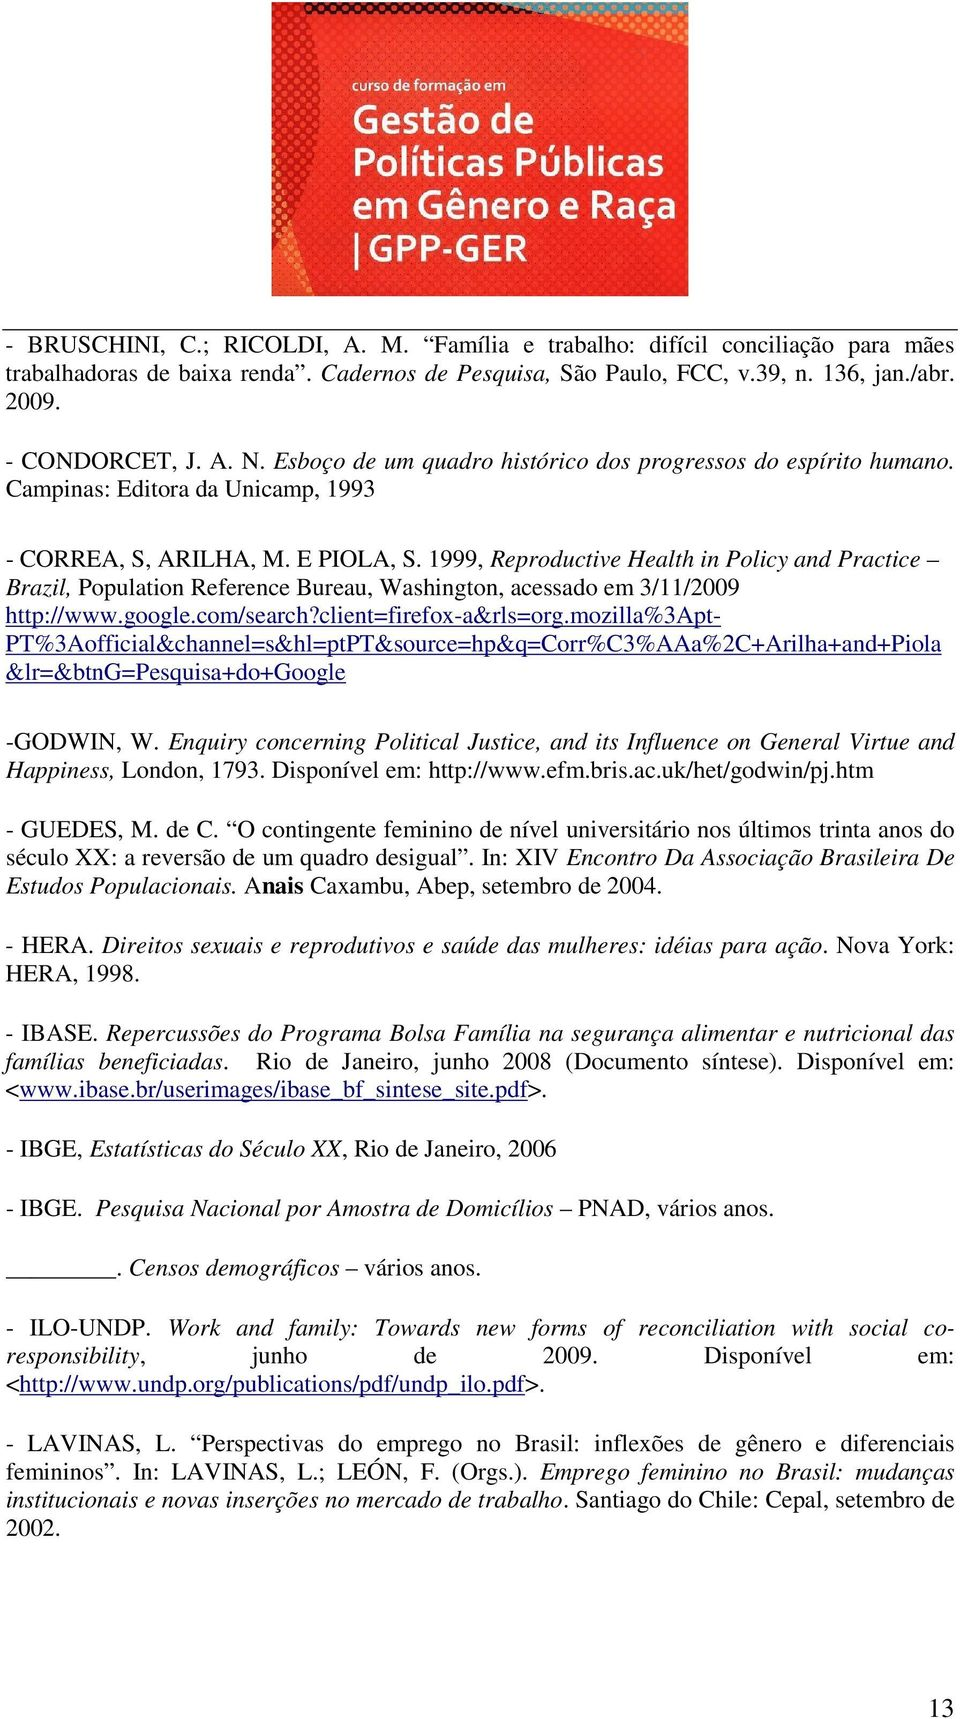 1999, Reproductive Health in Policy and Practice Brazil, Population Reference Bureau, Washington, acessado em 3/11/2009 http://www.google.com/search?client=firefox-a&rls=org.